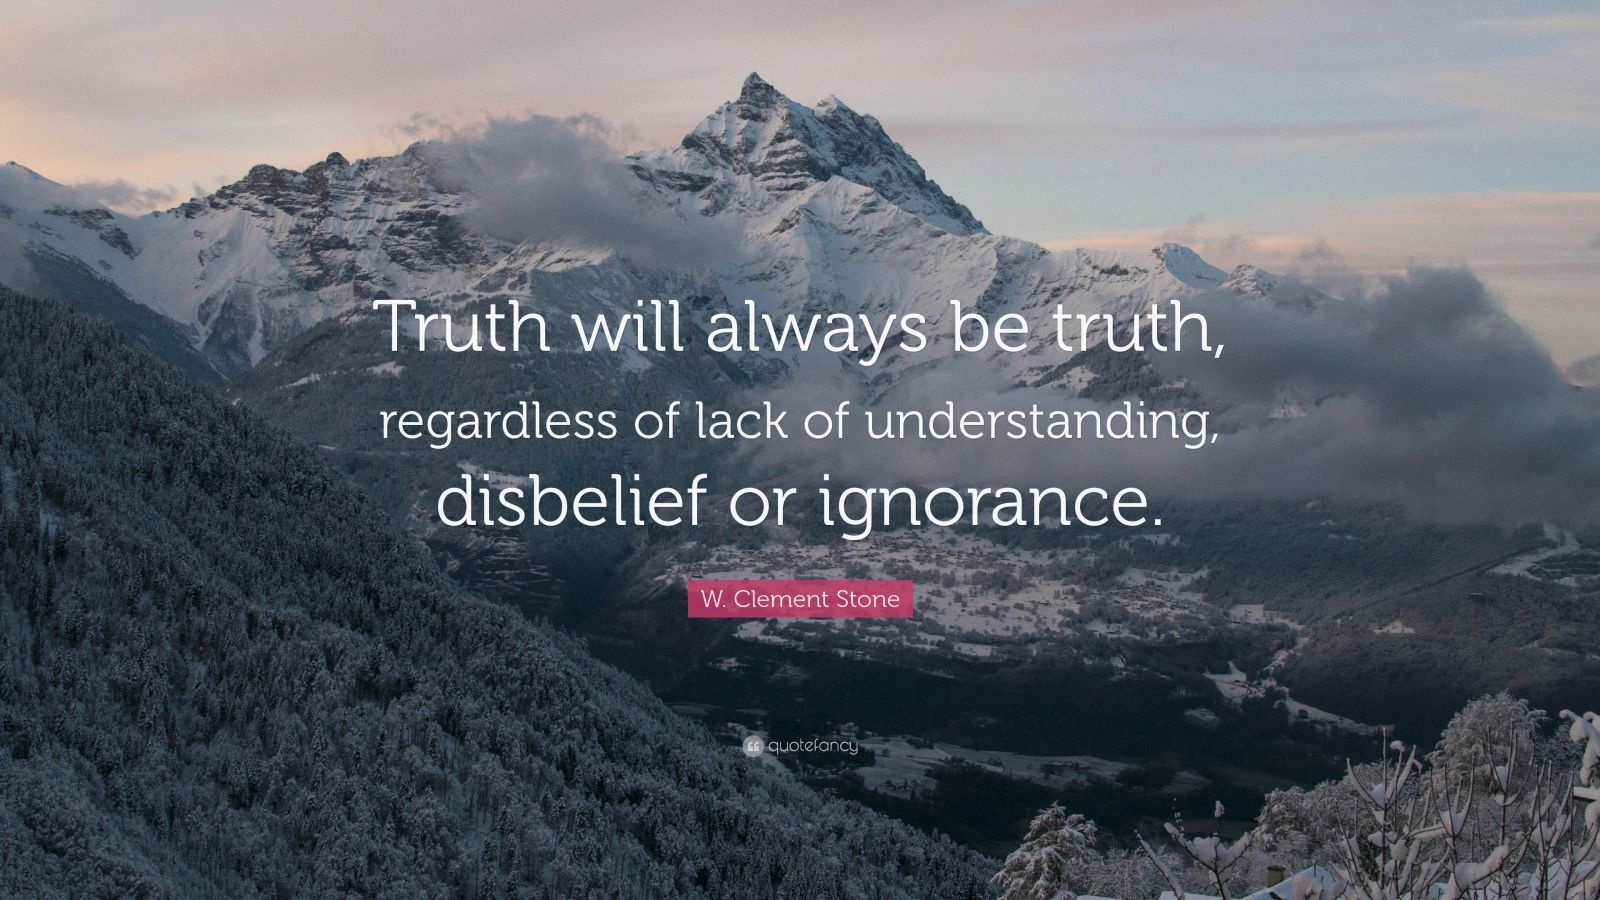 """W. Clement Stone Quote: """"Truth will always be truth, regardless of lack of understanding, disbelief or ignorance."""""""